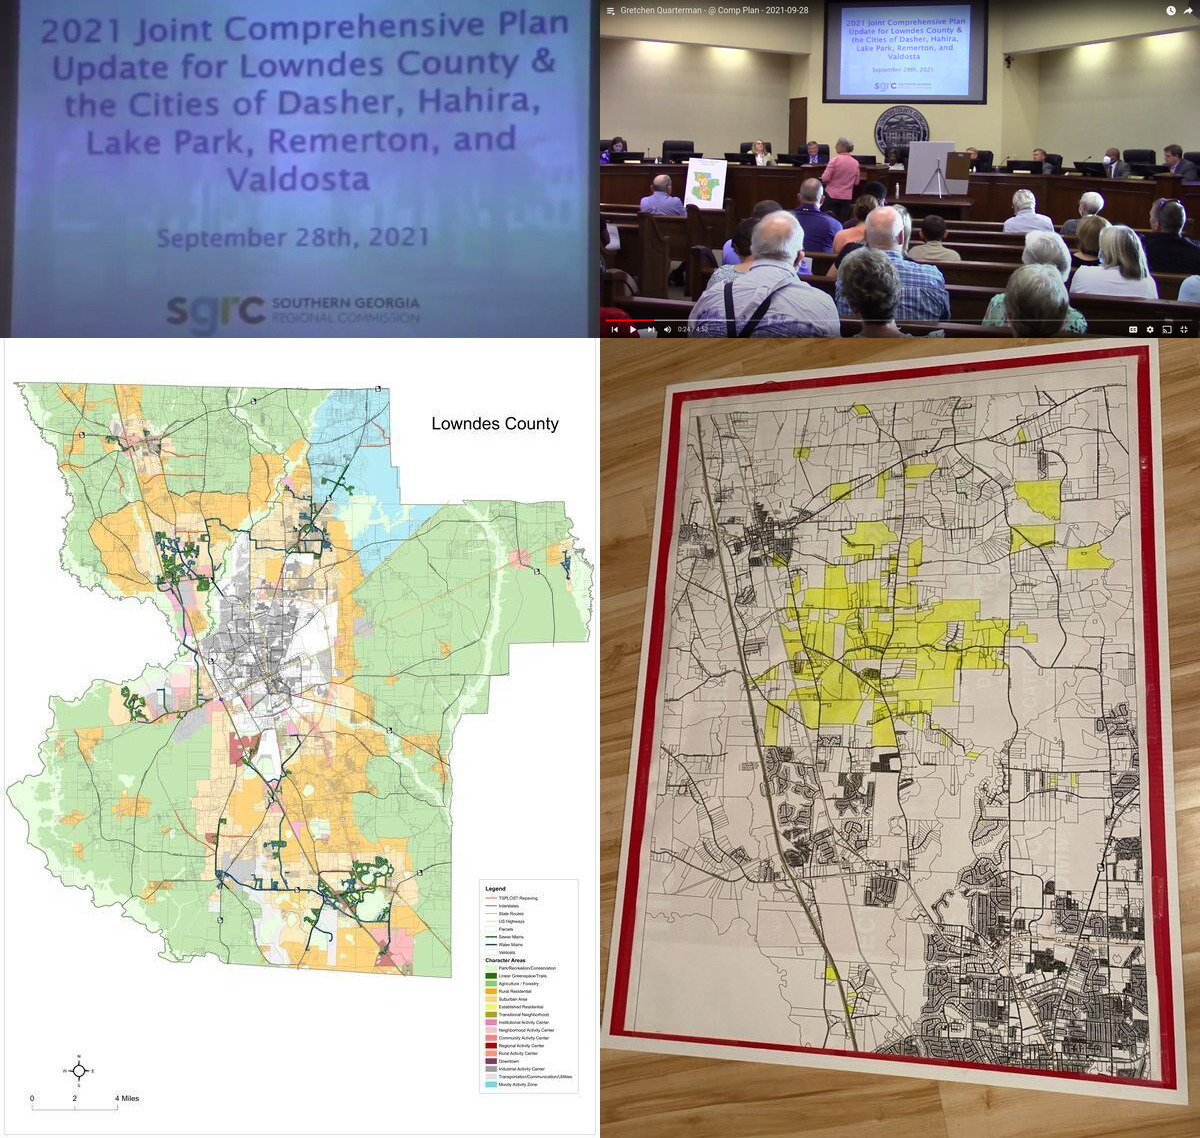 [Comprehensive Plan Update, Crowd, Lowndes County Character Areas, Map of those opposed to changing Character Areas]